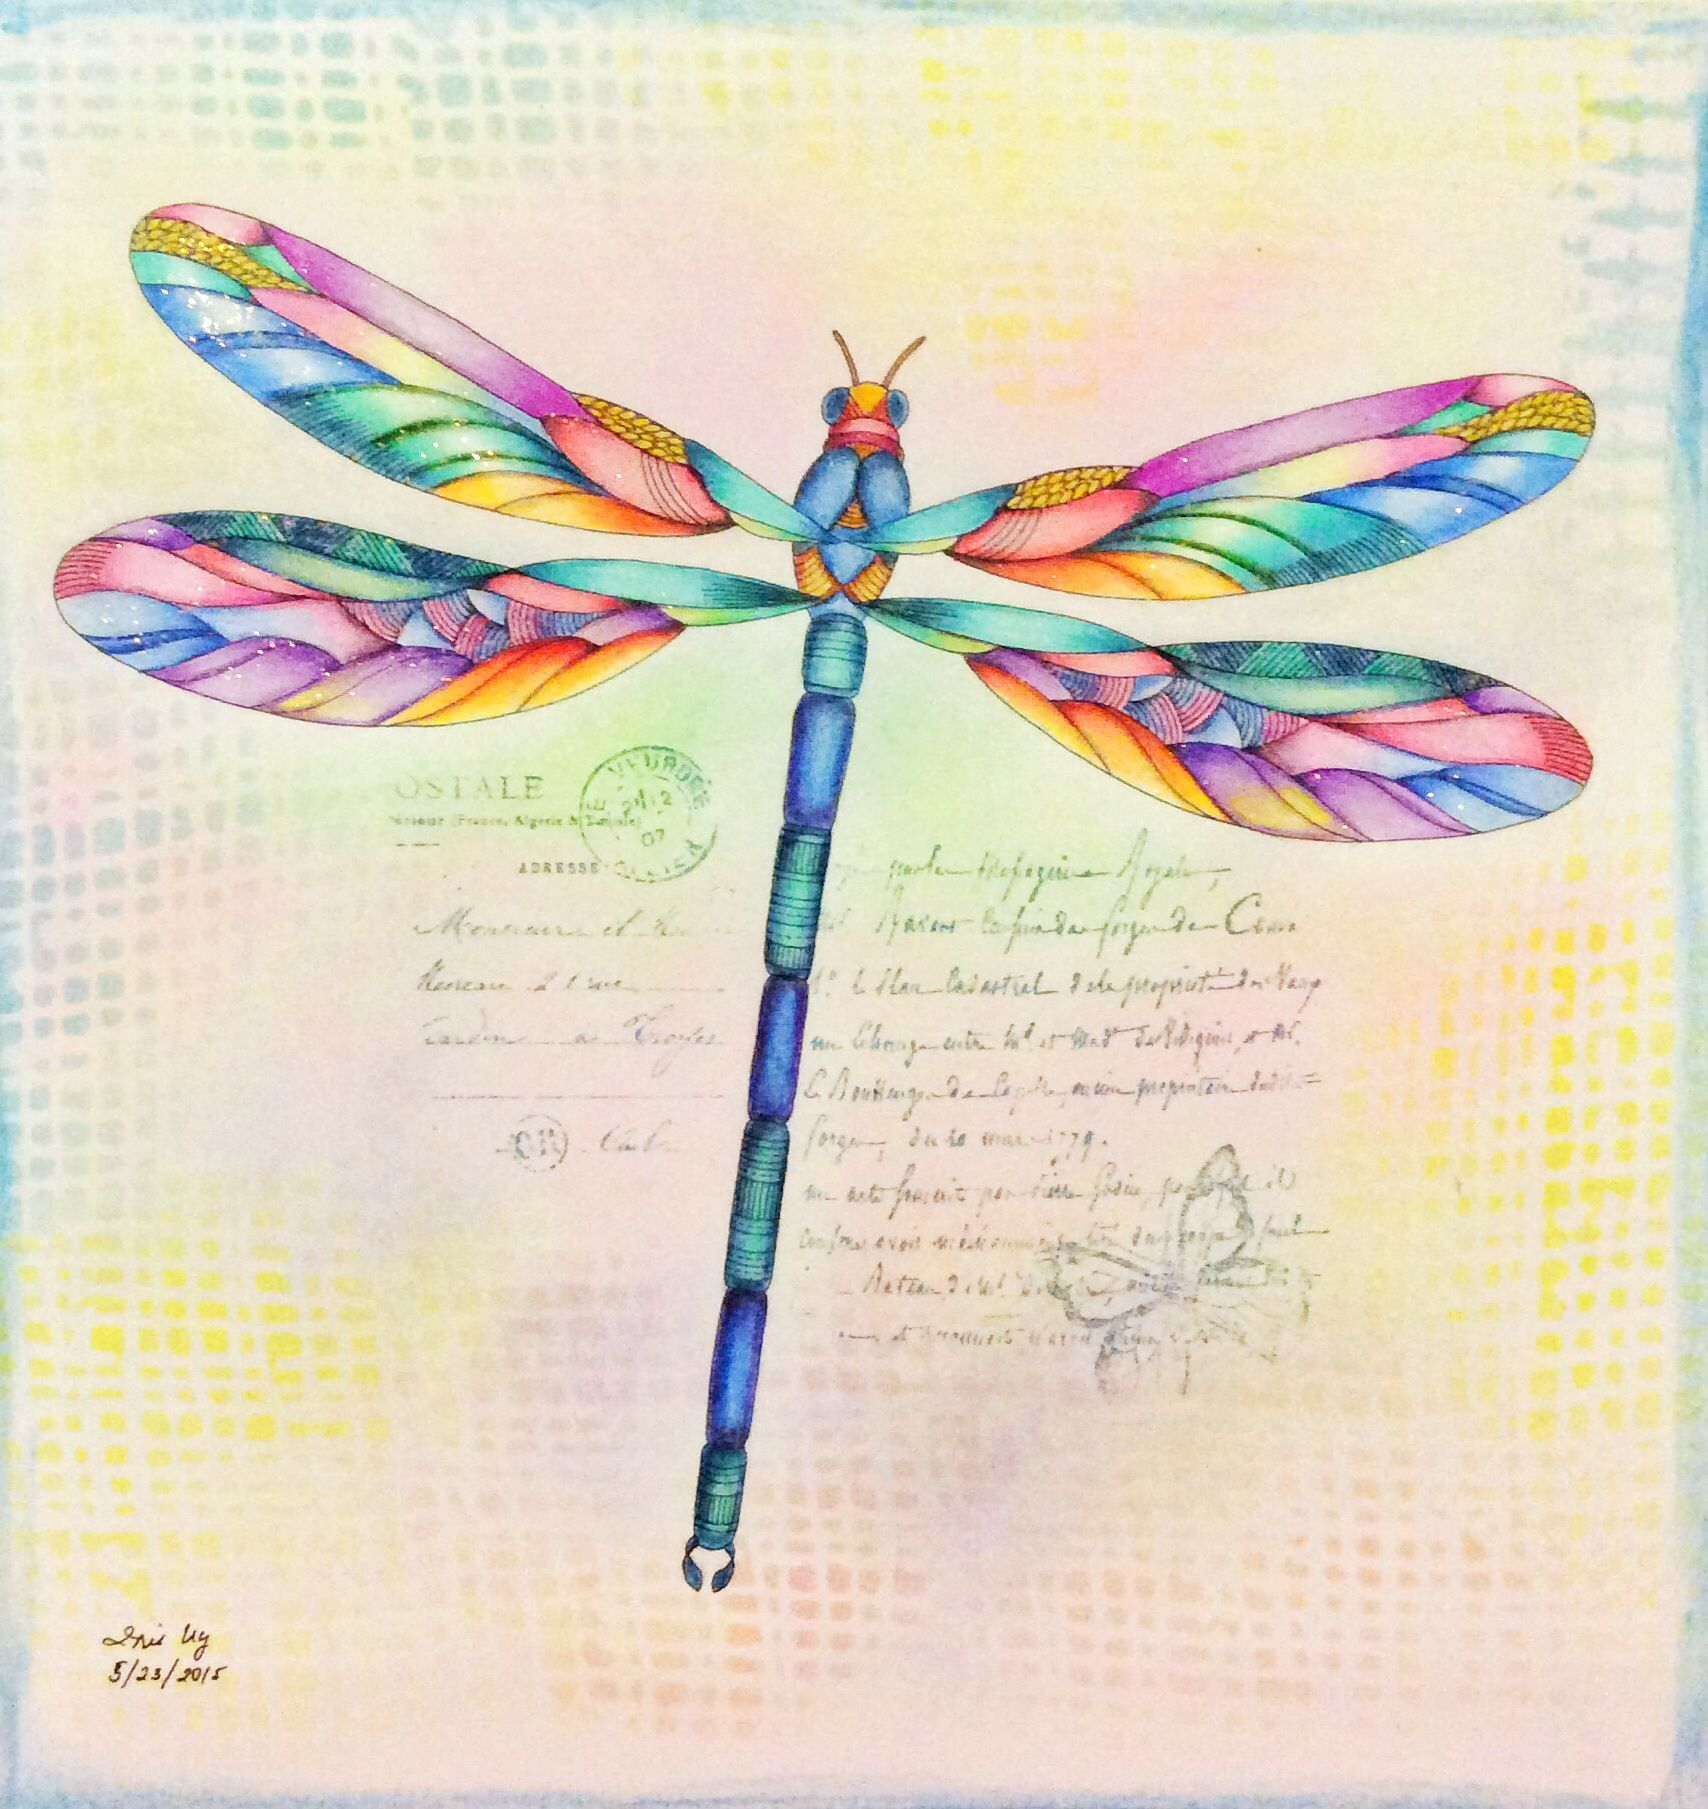 Coloring in dragonflies - Dragonfly From Animal Kingdom By Millie Marotta